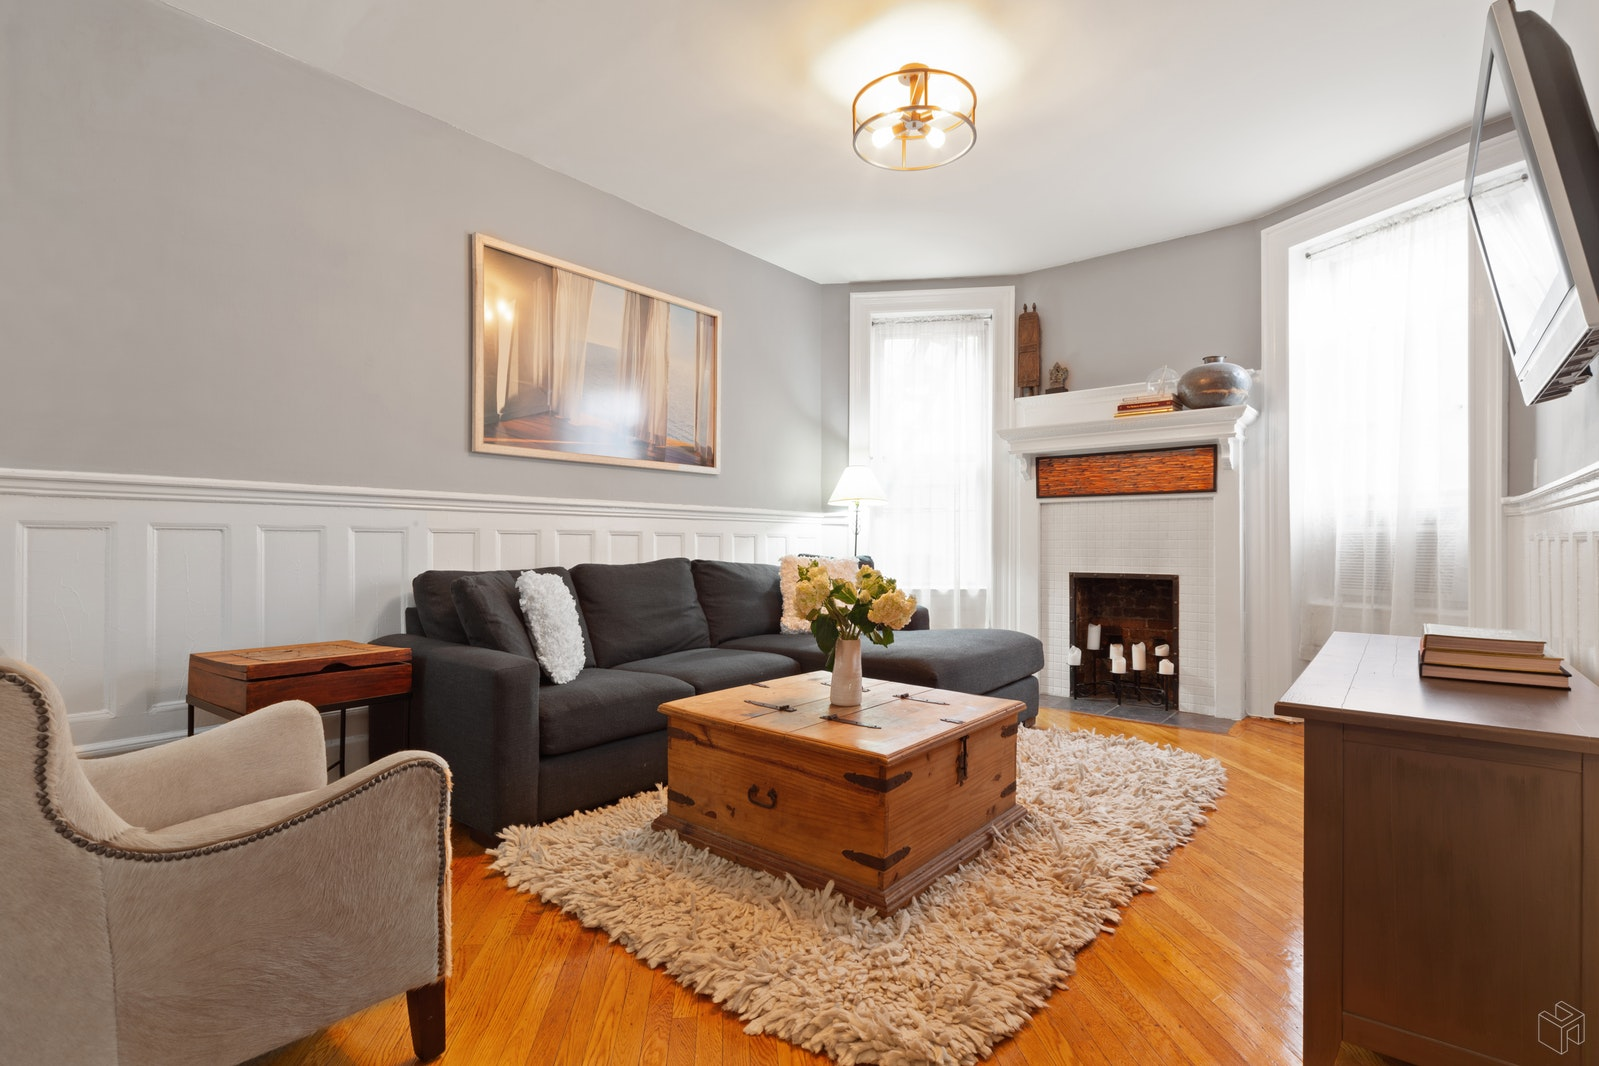 606 West 113th Street 4c, Upper West Side, NYC, 10025, $799,000, Property For Sale, Halstead Real Estate, Photo 1